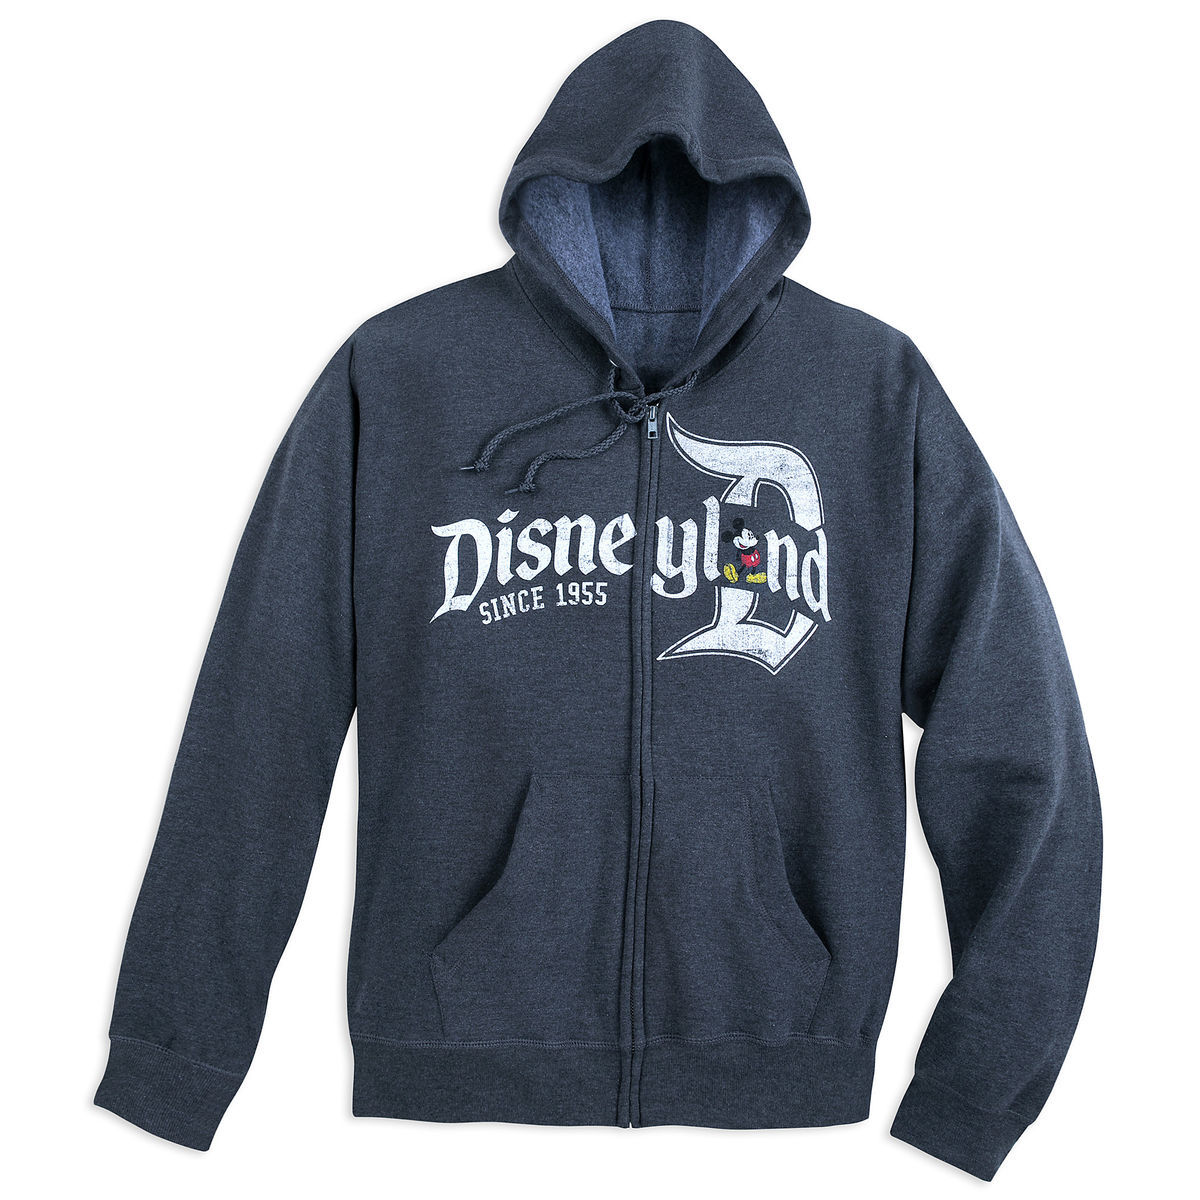 0edbd0d83da Product Image of Mickey Mouse Zip Hoodie for Adults - Disneyland   1